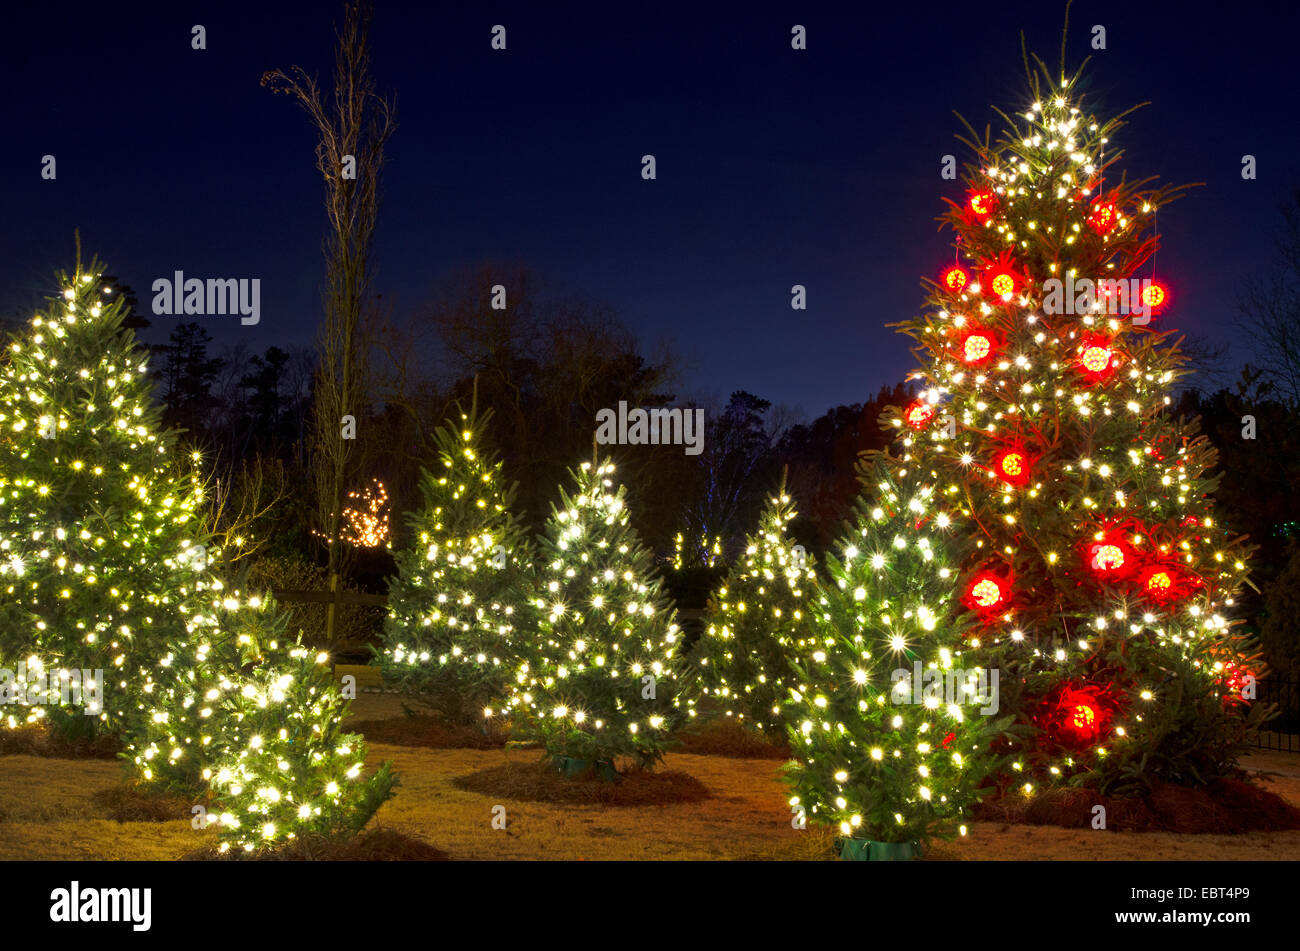 Outdoor Christmas Trees Have Been Decorated With Red And White Lights Stock Photo Royalty Free